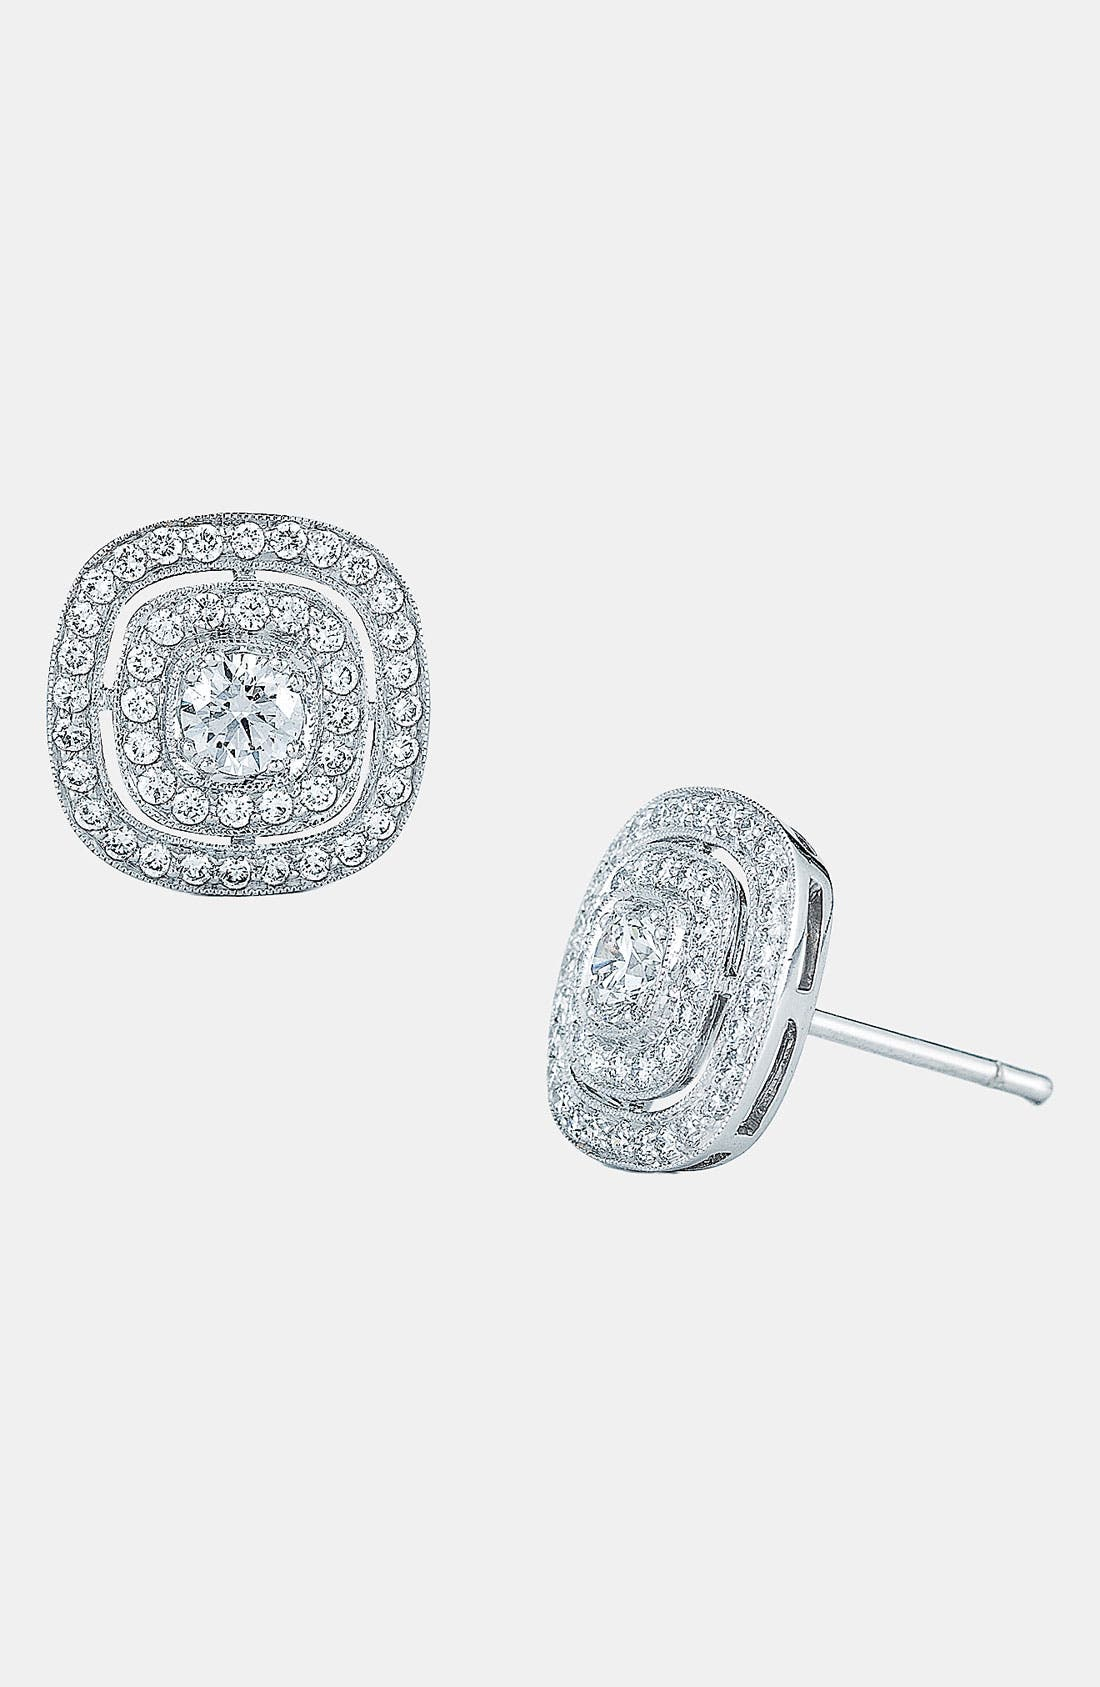 Main Image - Kwiat 'Silhouette' Diamond Stud Earrings